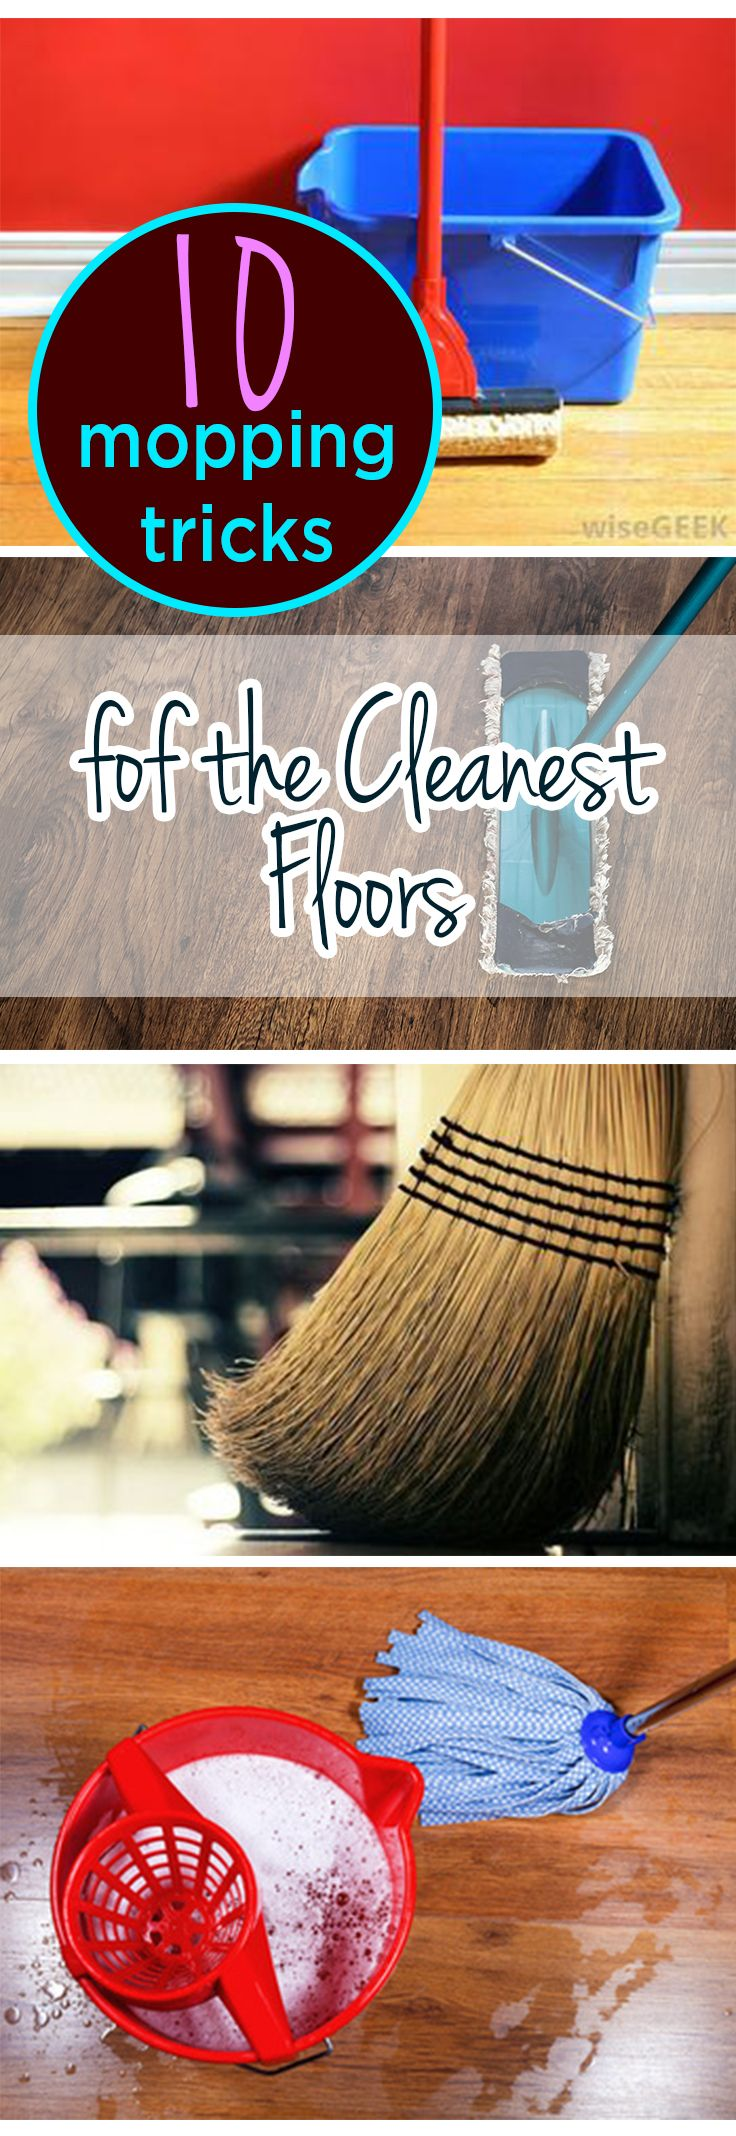 10 Mopping Tricks fof the Cleanest Floors